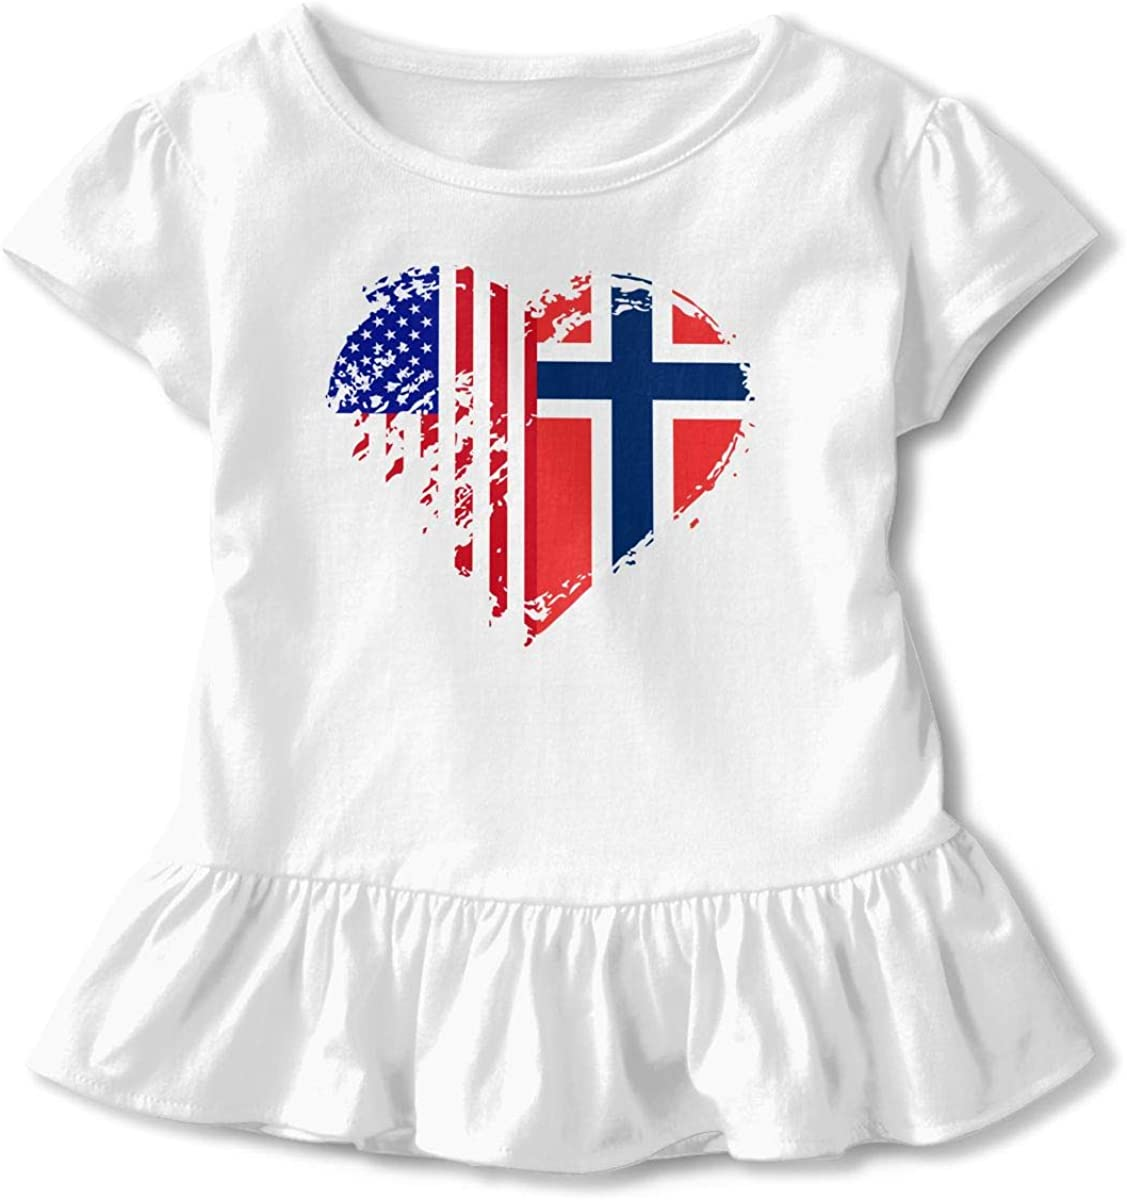 26NSHIRT Grungy Norway American Flag Heart Kids Baby Girls Short Sleeve Graphic Tee